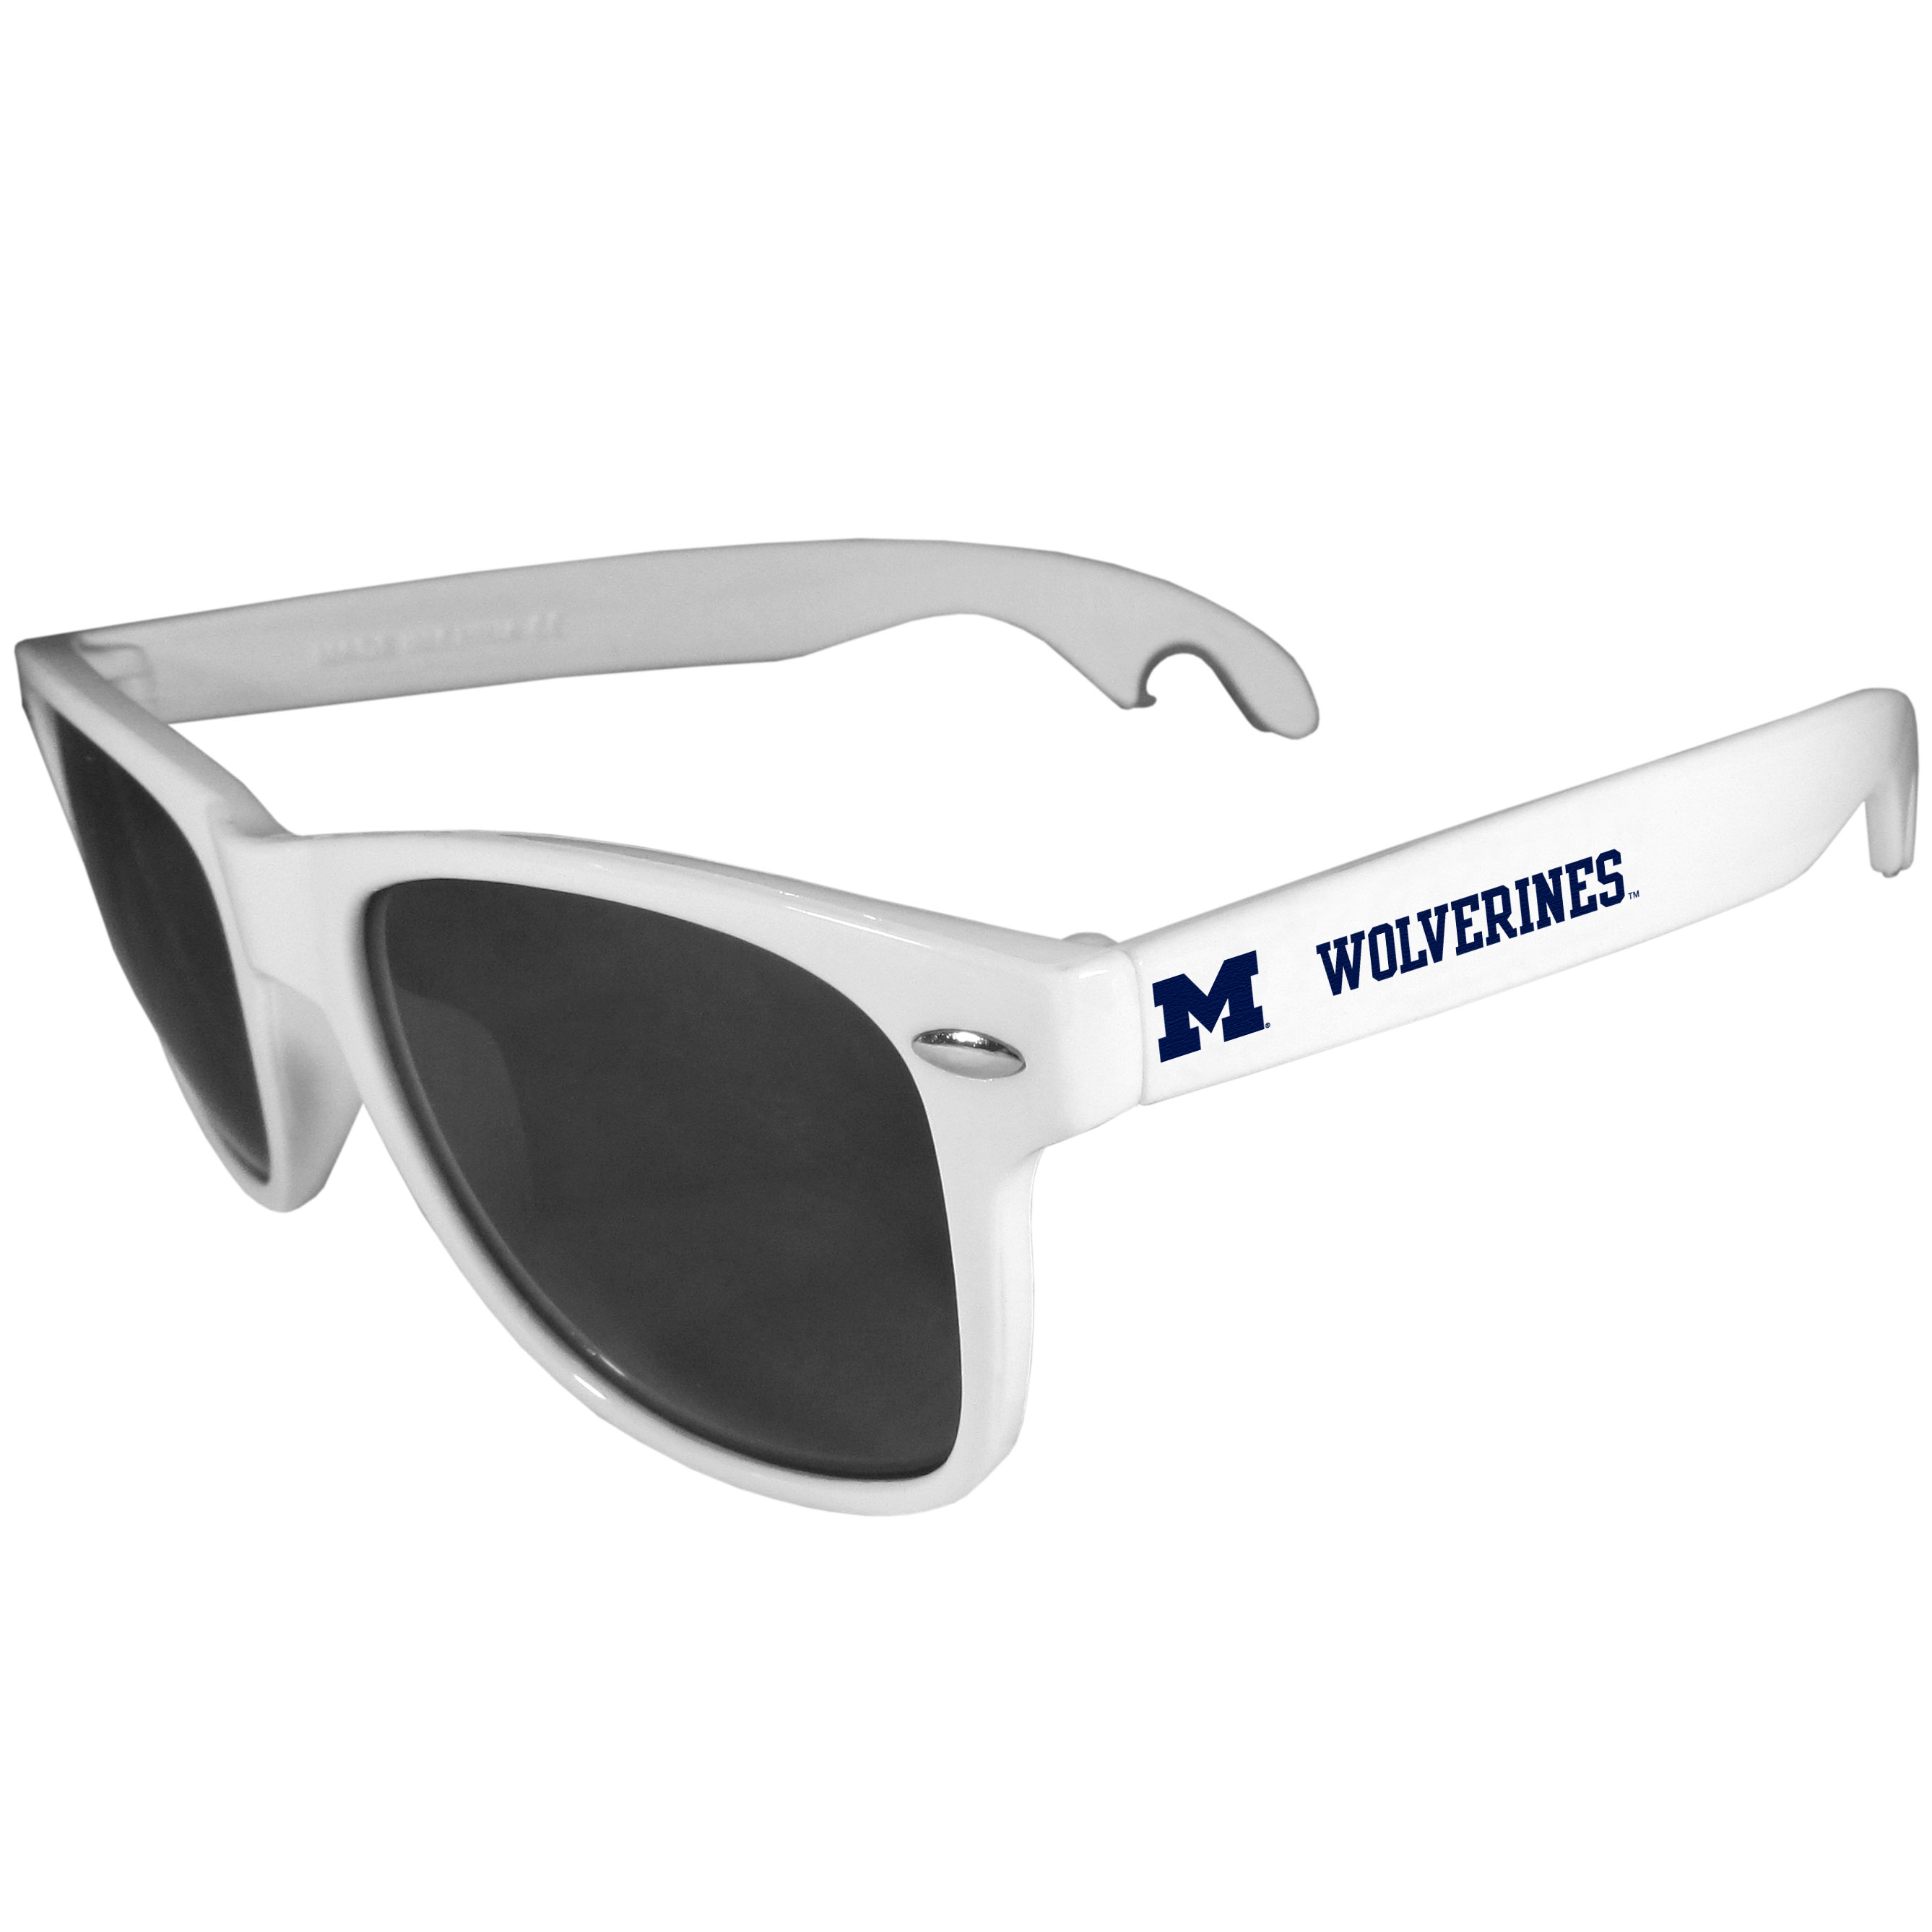 Michigan Wolverines Beachfarer Bottle Opener Sunglasses, White - Seriously, these sunglasses open bottles! Keep the party going with these amazing Michigan Wolverines bottle opener sunglasses. The stylish retro frames feature team designs on the arms and functional bottle openers on the end of the arms. Whether you are at the beach or having a backyard BBQ on game day, these shades will keep your eyes protected with 100% UVA/UVB protection and keep you hydrated with the handy bottle opener arms.